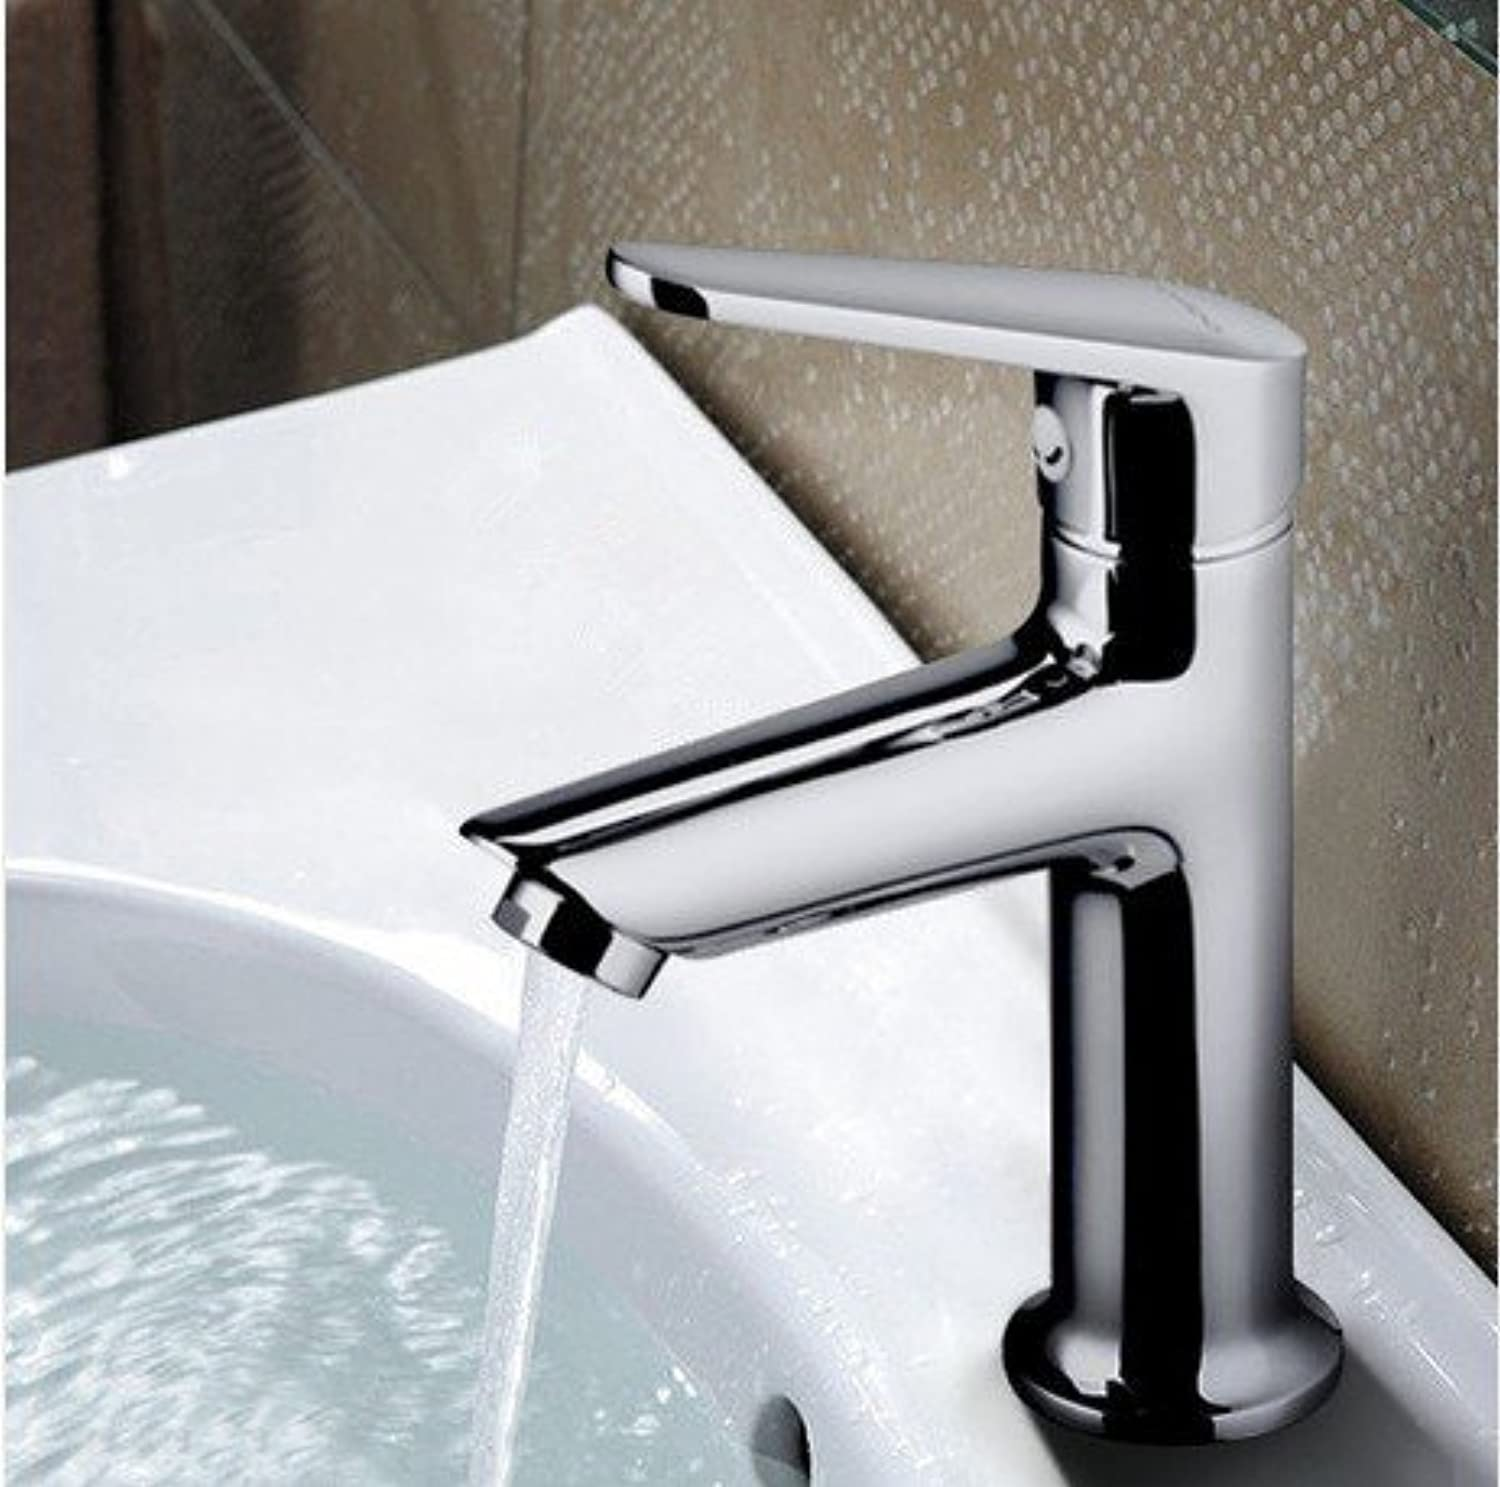 Lalf Copper Retro Hot and Cold Faucet